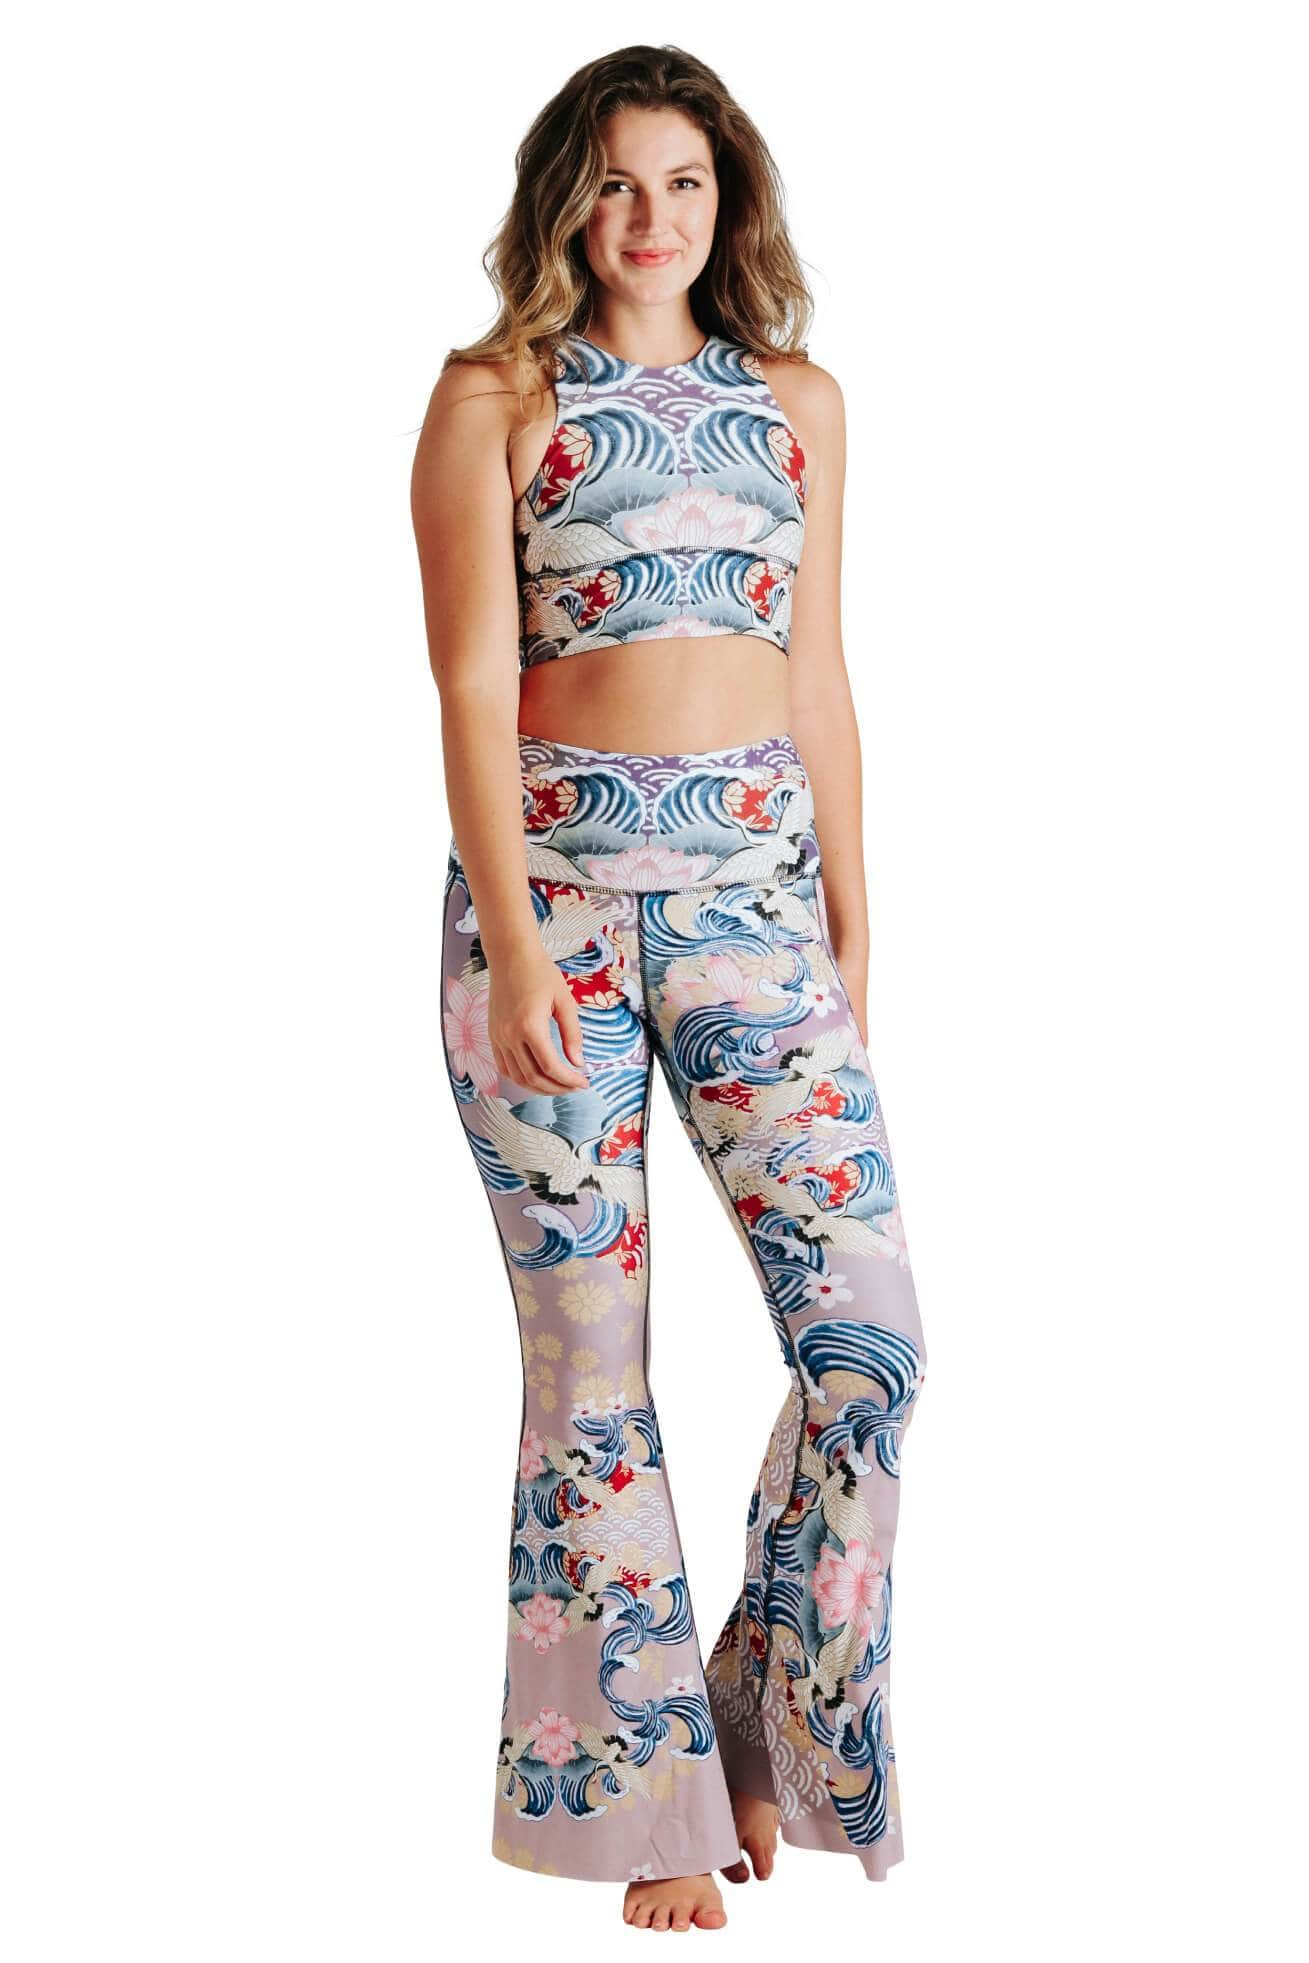 Yoga Democracy women's Eco-friendly bell bottom flare leggings in Zen Water Garden asia inspired print. USA made from post consumer recycled plastic bottles